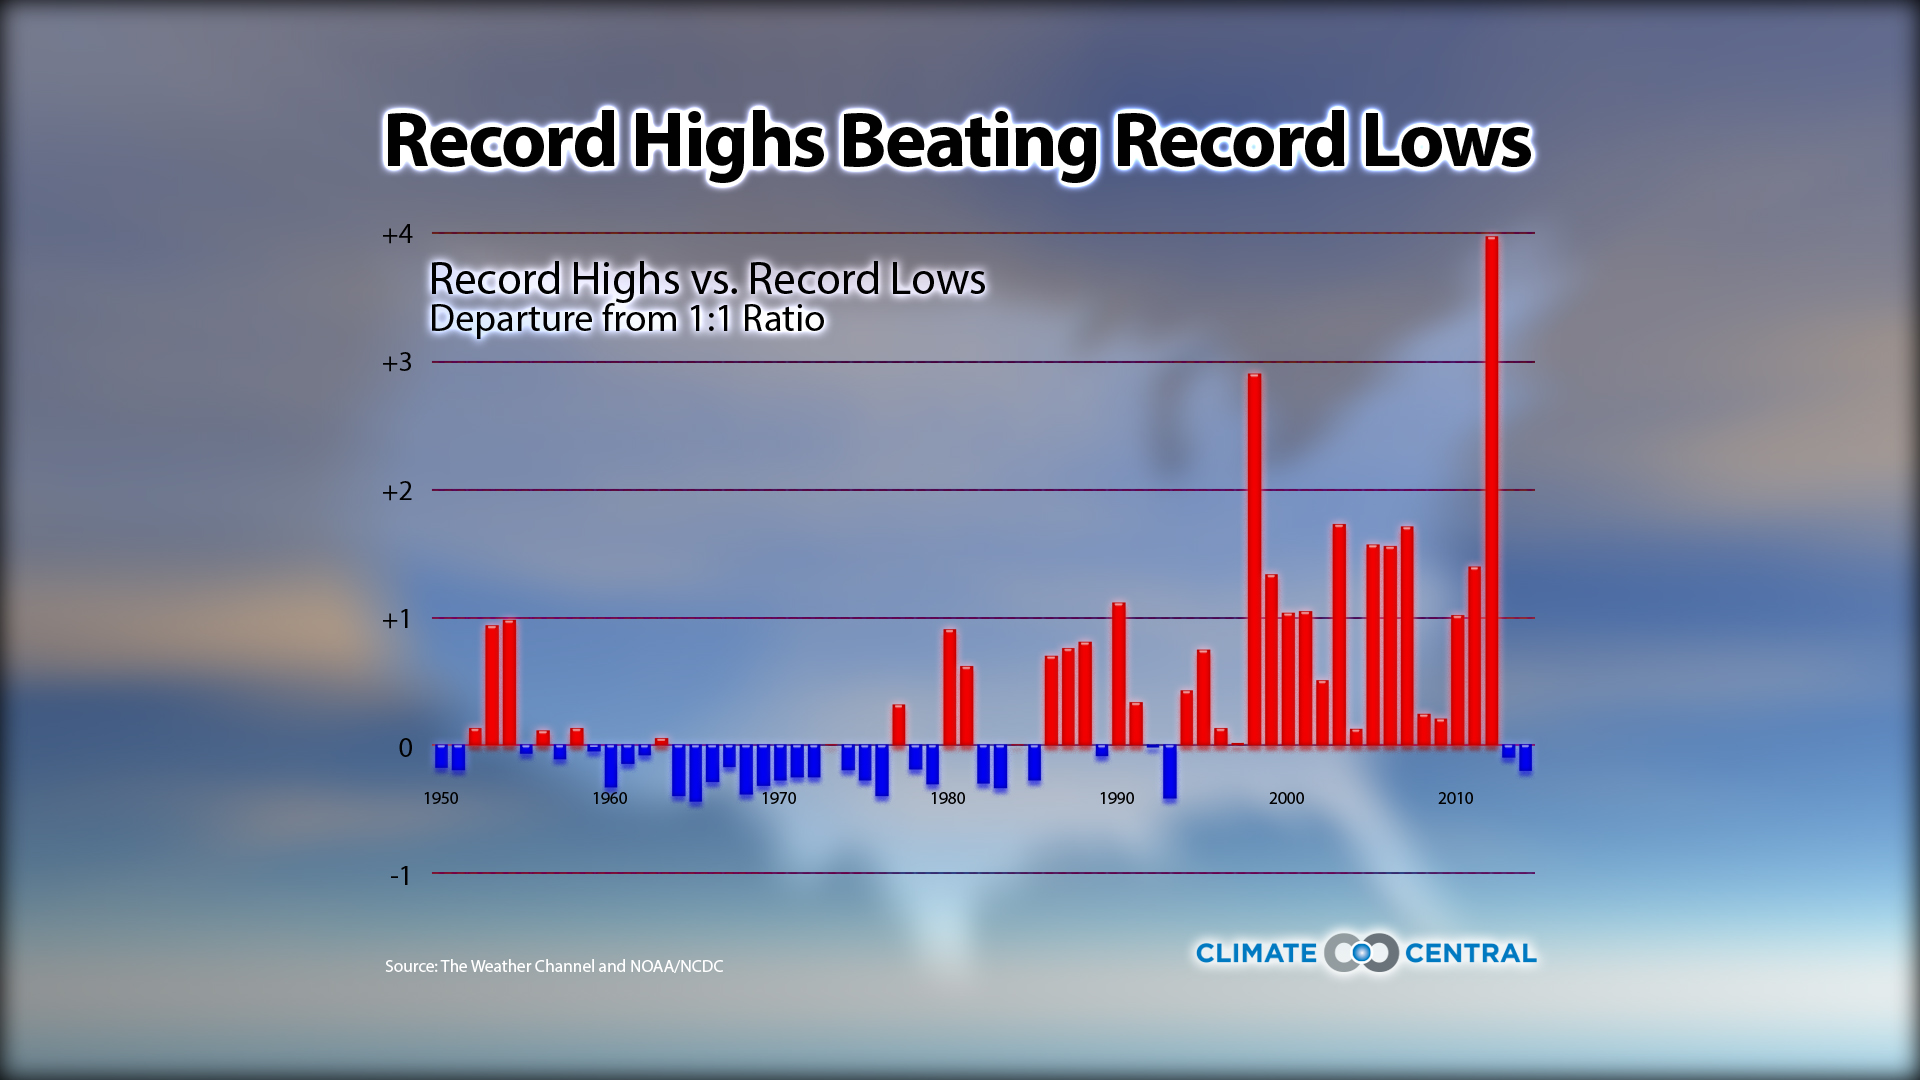 Record Highs Beating Record Lows